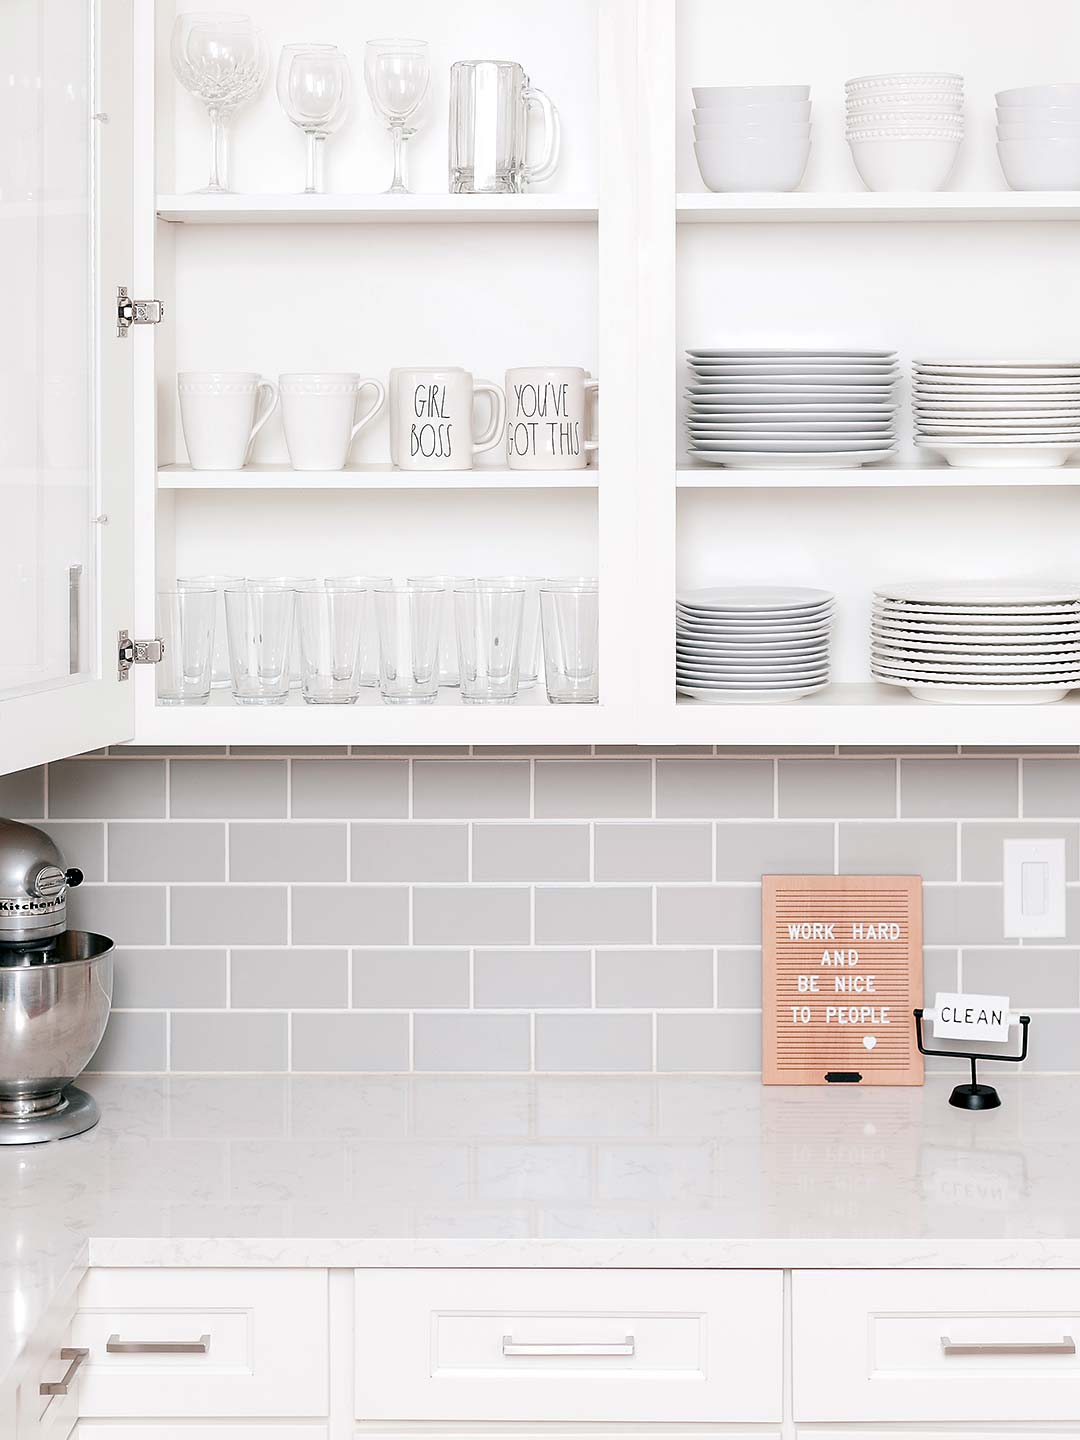 Full dinnerware set organizing in kitchen cabinets with glass doors